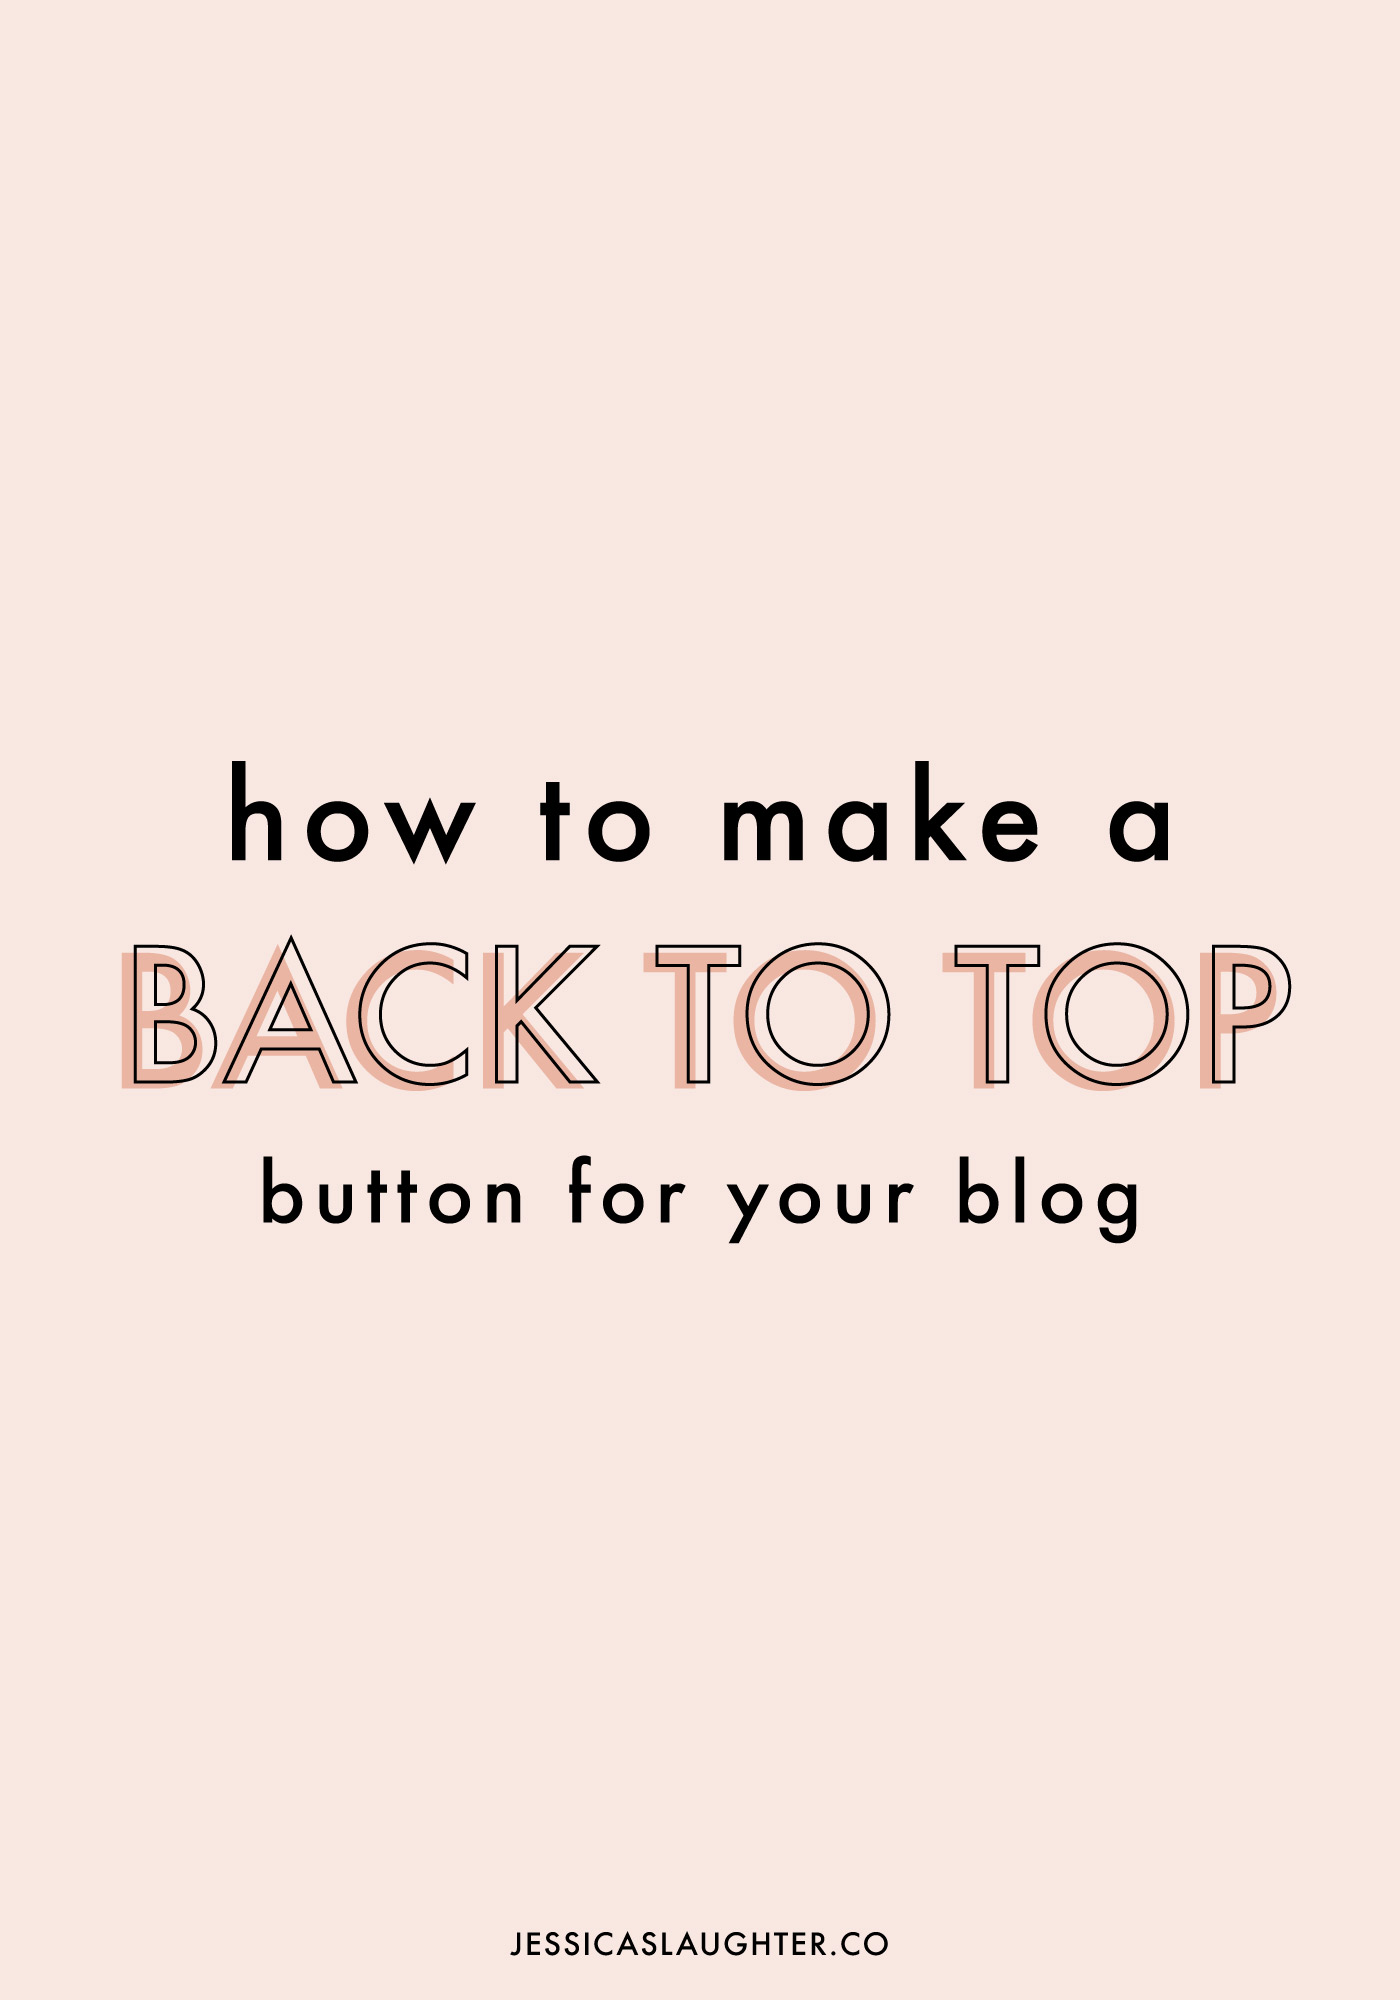 How To Make A Back To Top Button For Your Blog | Jessica Slaughter